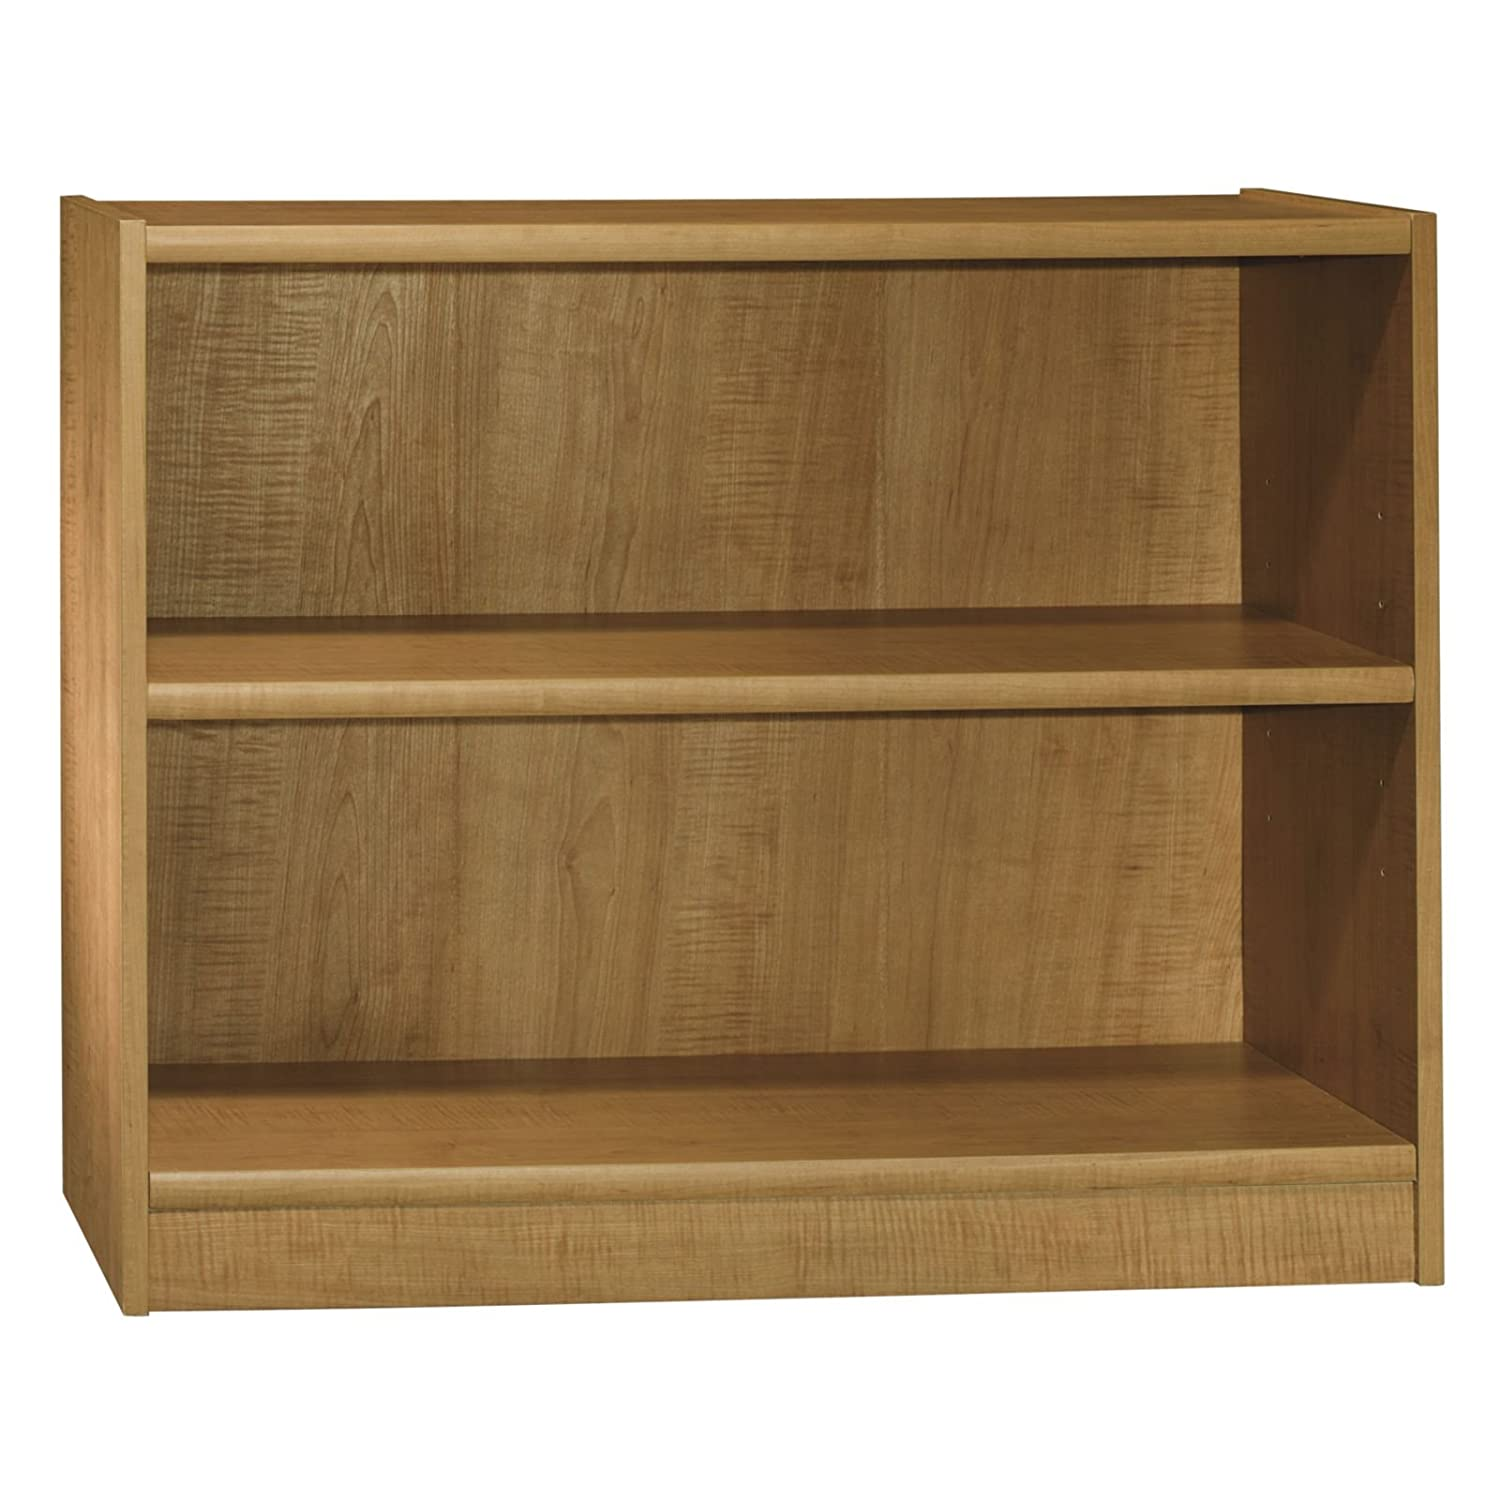 BUSH FURNITURE Universal 30-inch Two Shelf Bookcase by Bush Furniture